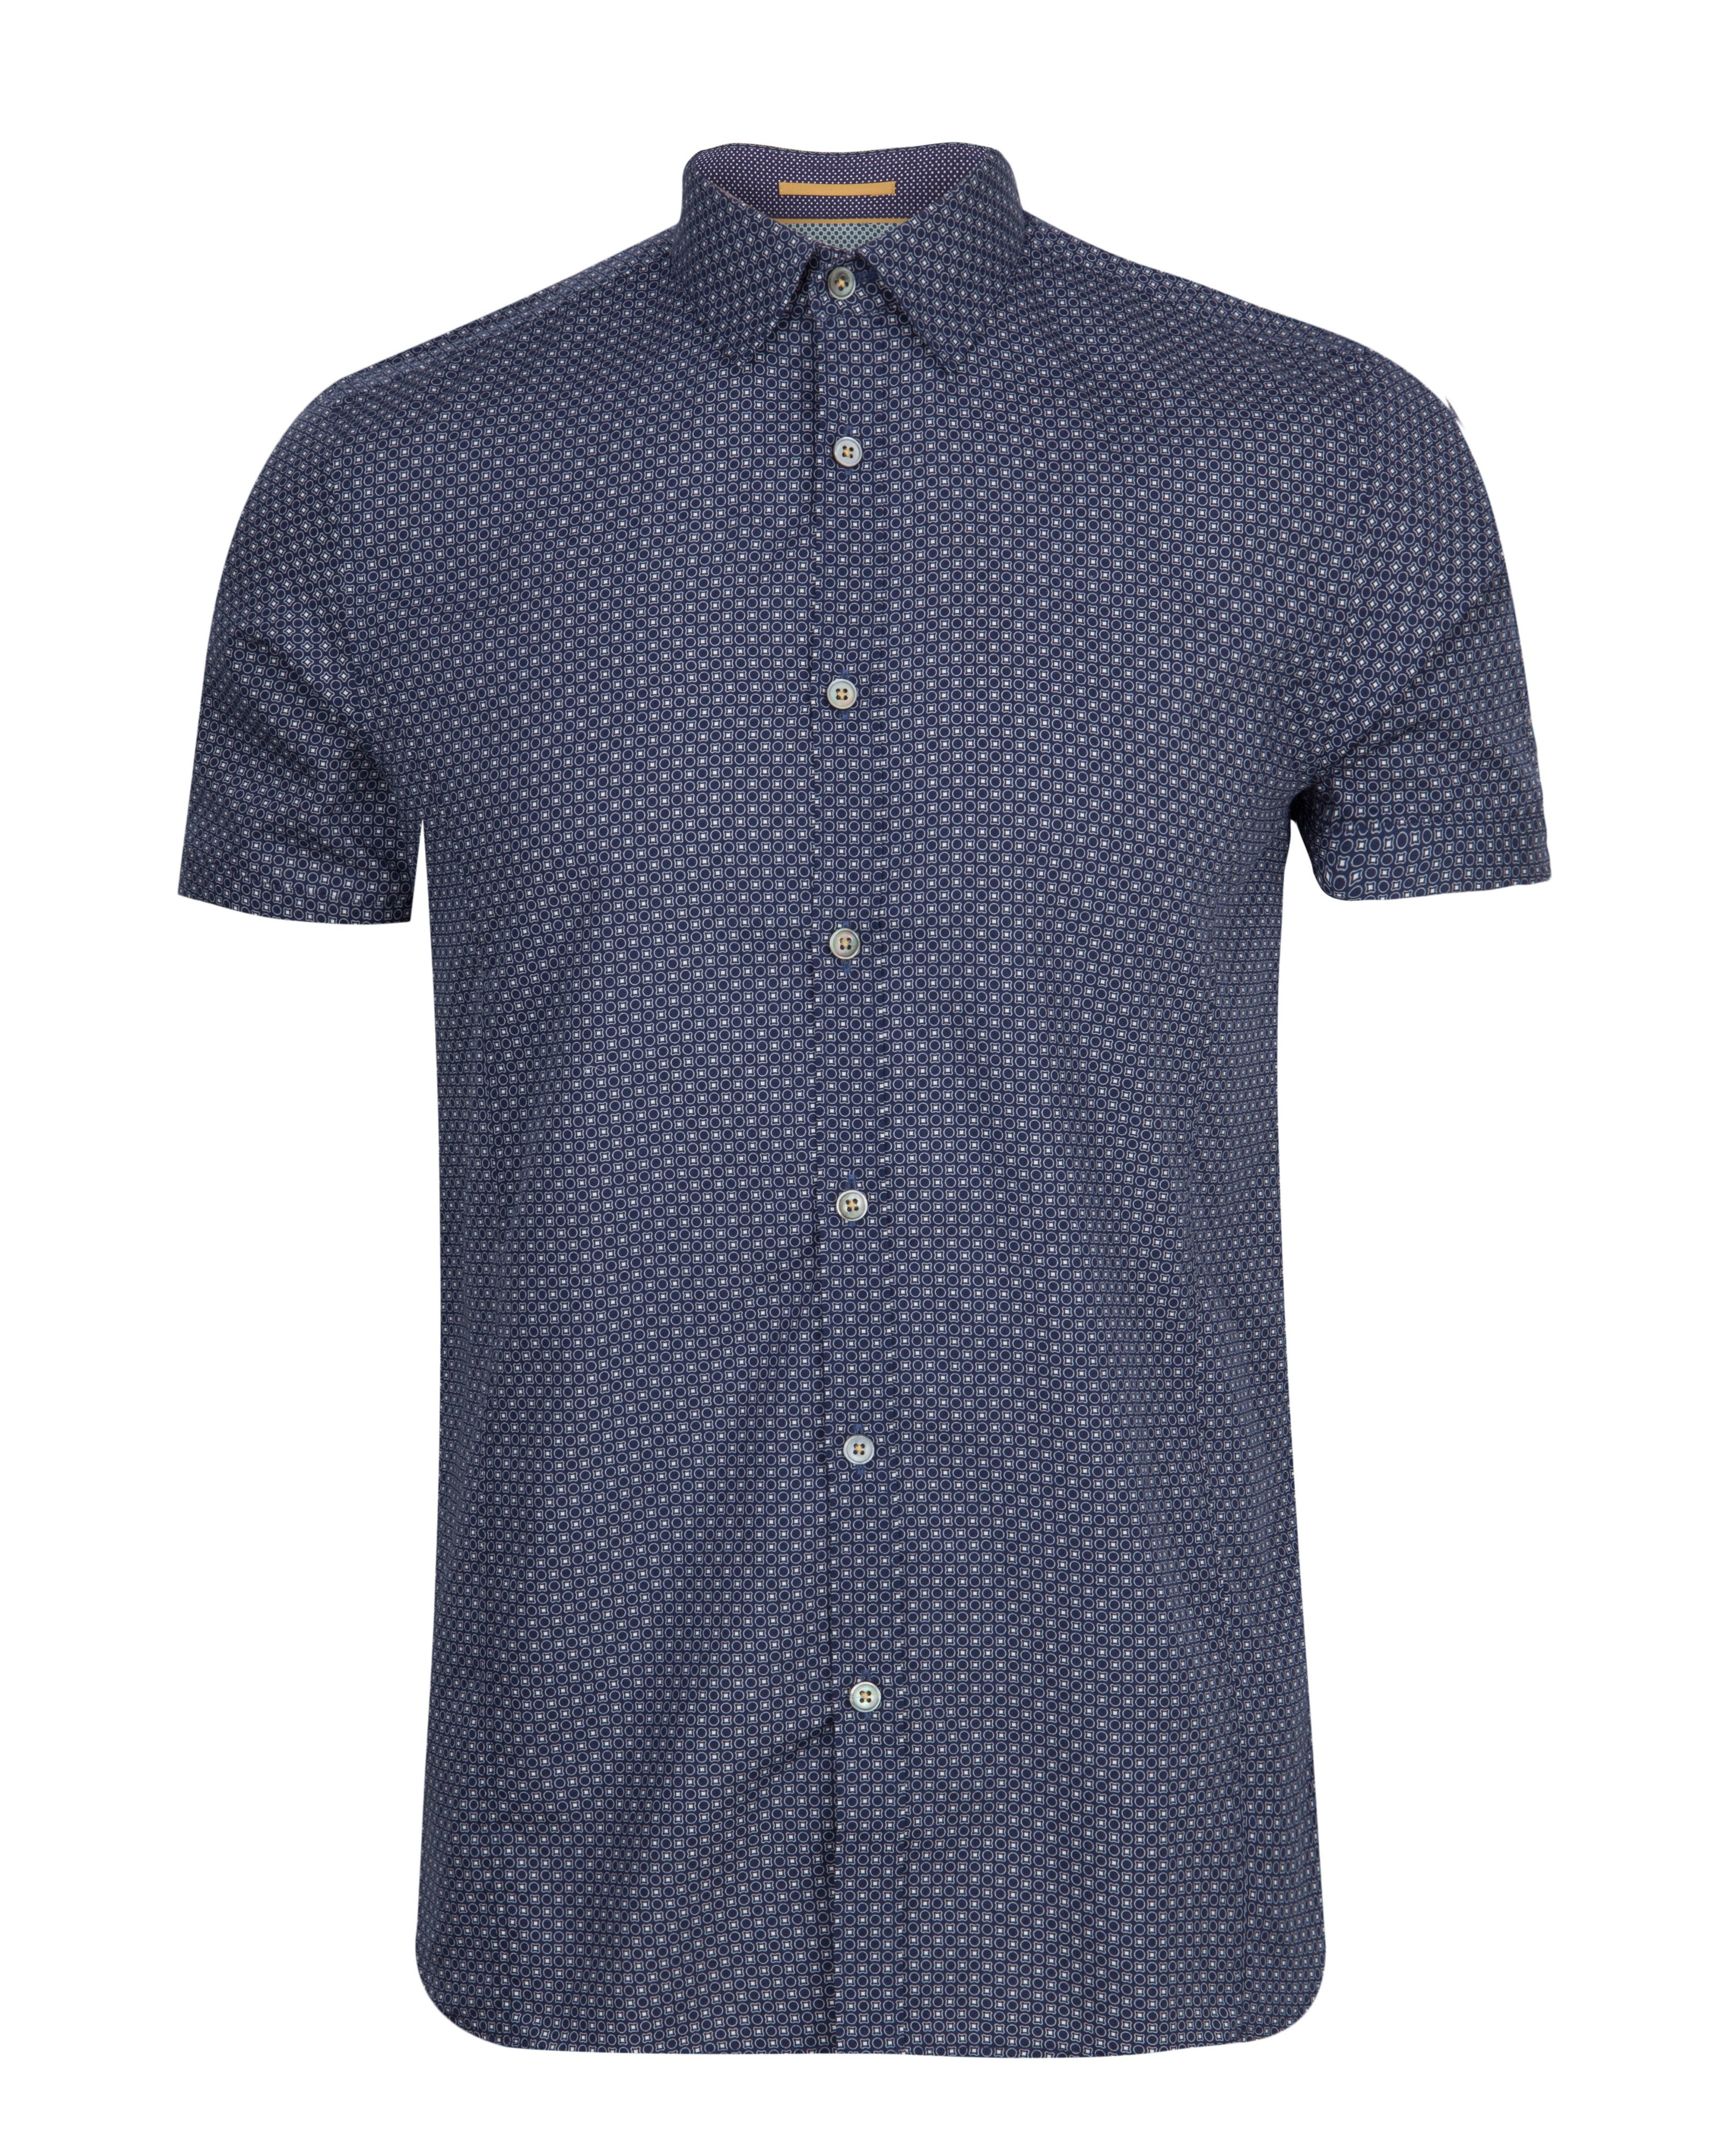 Ted baker paletwo pattern short sleeve shirt in blue for for Ted baker blue shirt